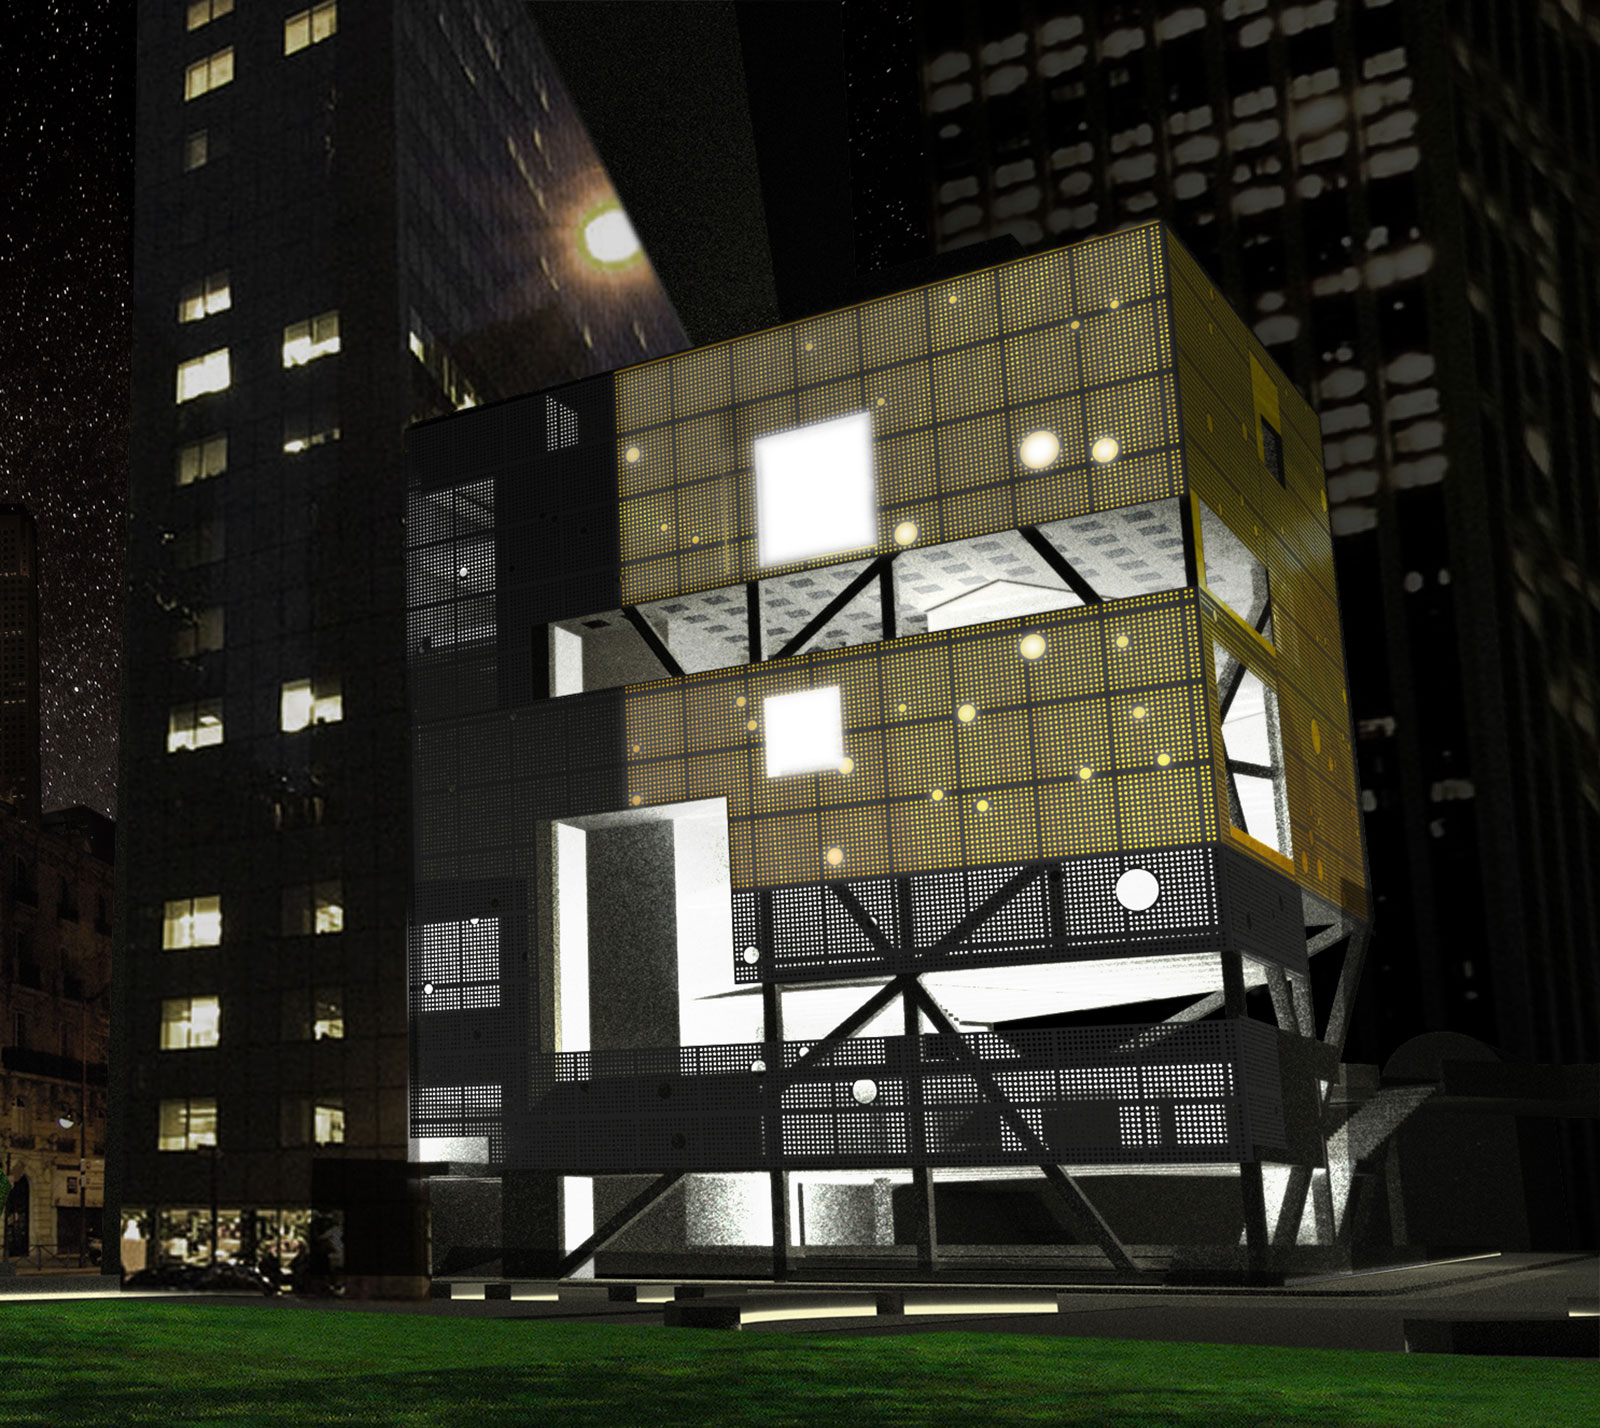 Perspective of the glowing SPCS center from park across the street at night